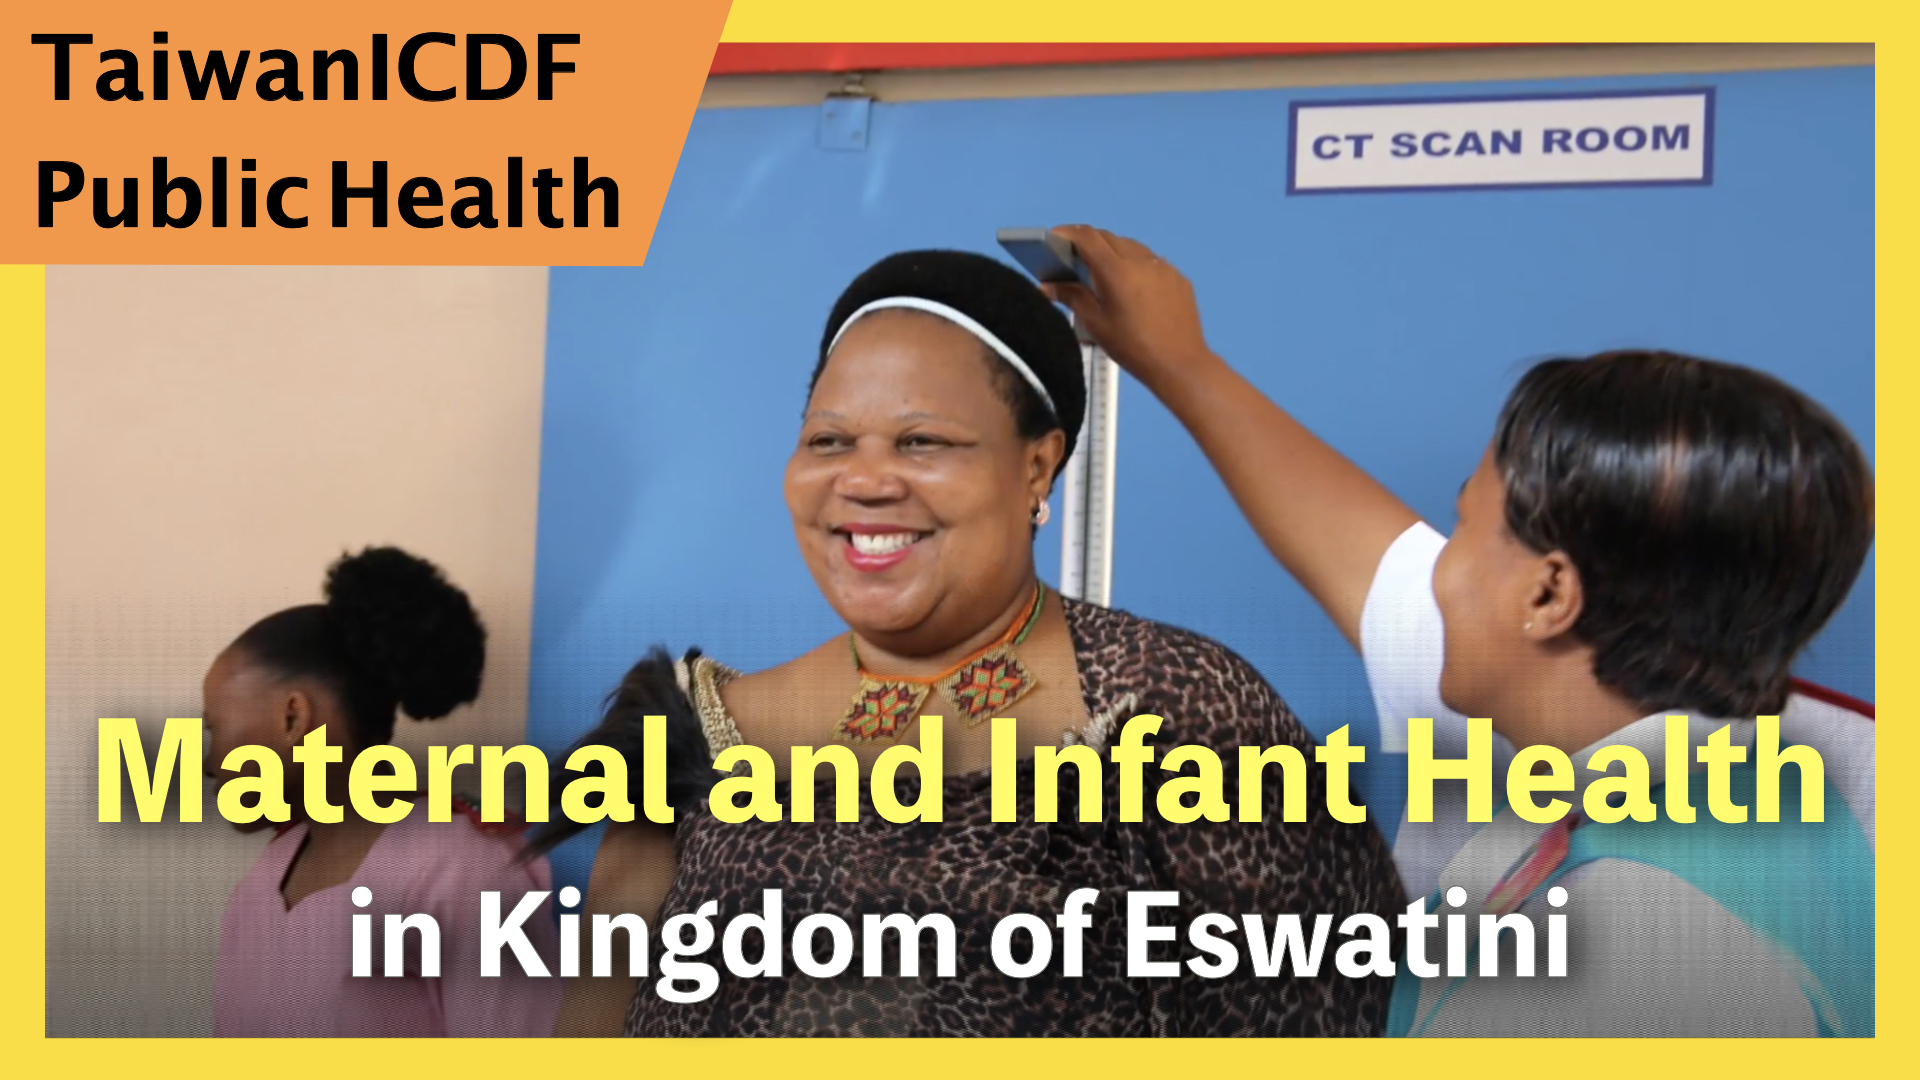 Maternal and Infant Health Care Improvement Project in the Kingdom of Eswatini